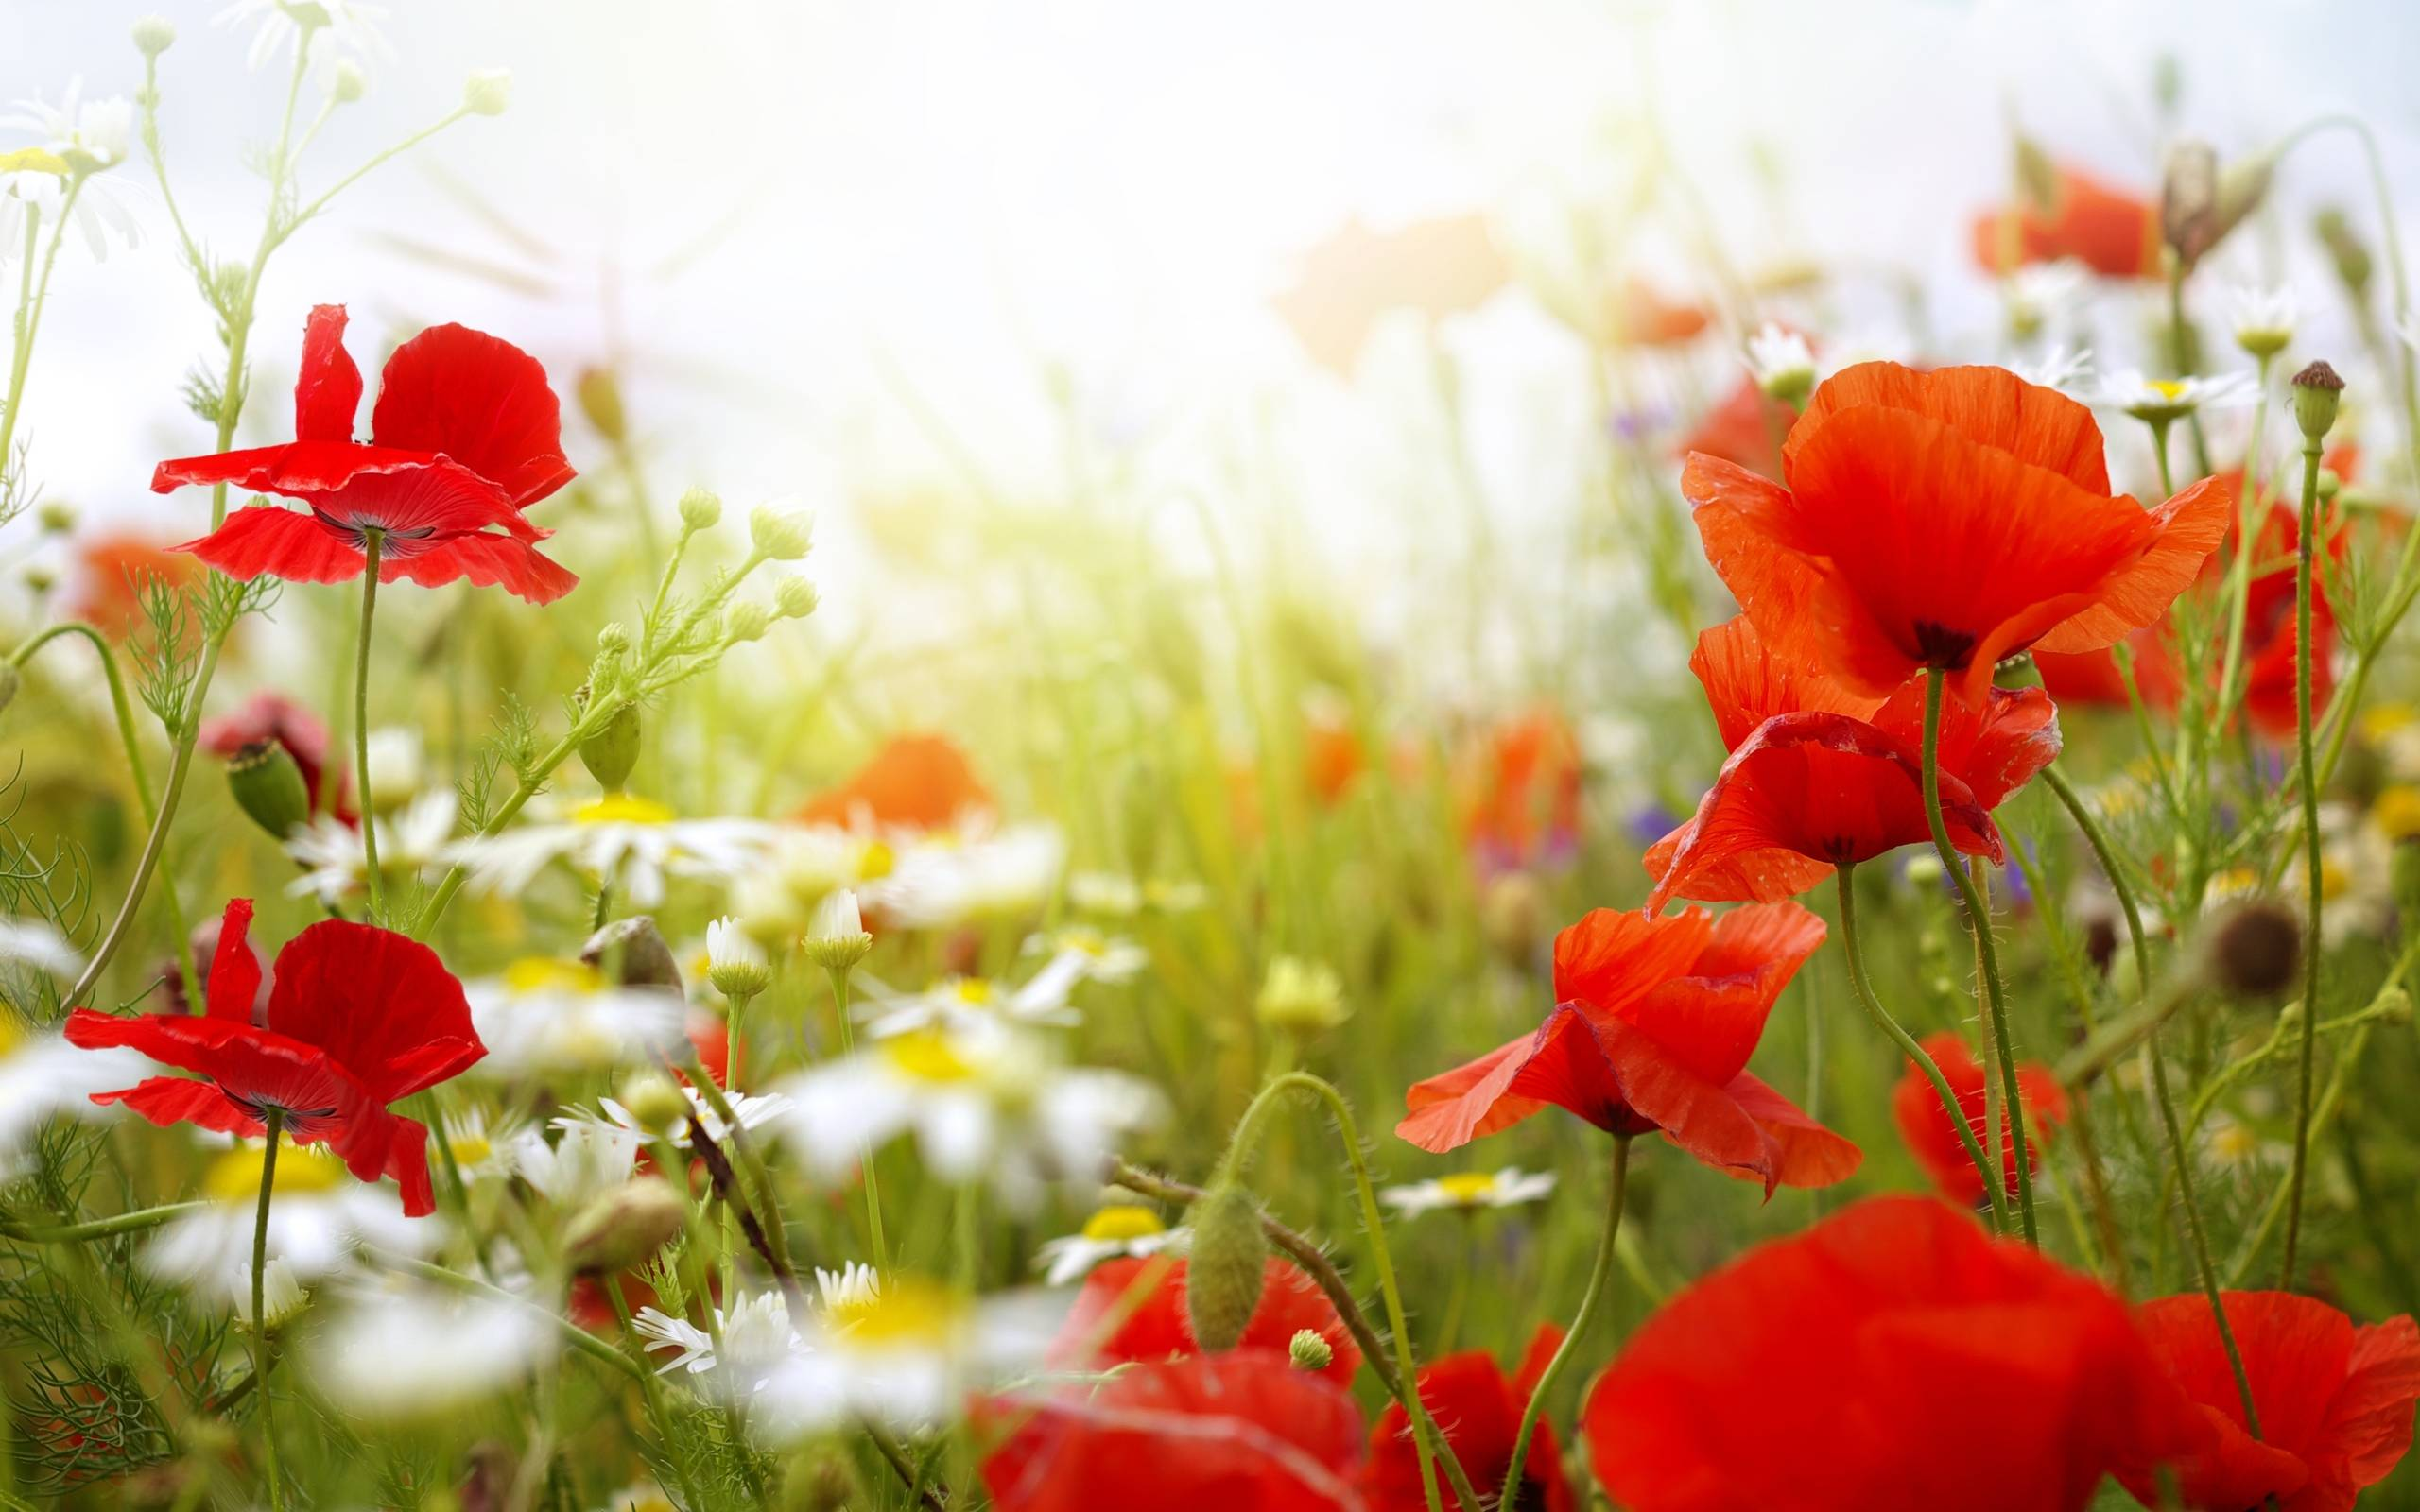 Spring Flowers Wallpapers Wide at Landscape Monodomo 2560x1600